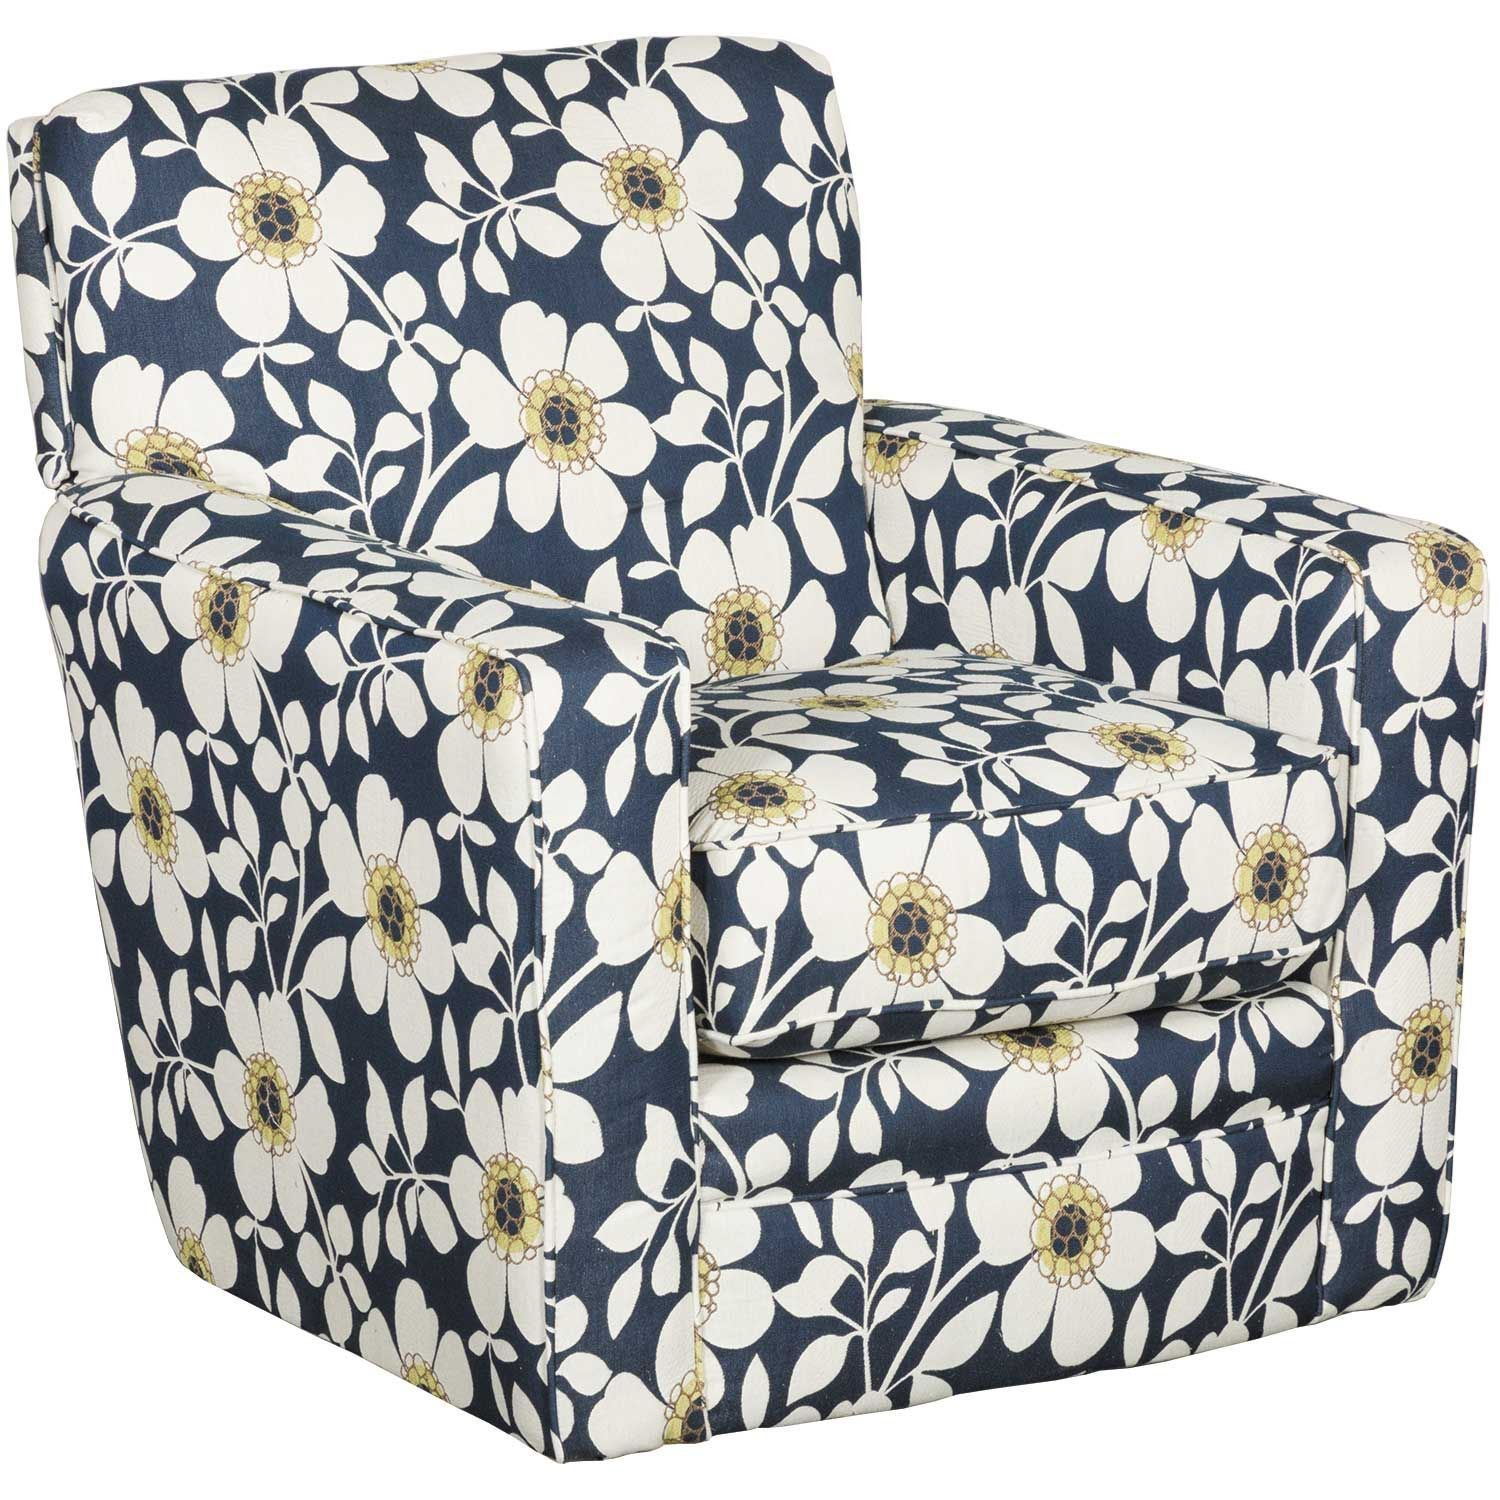 Fabulous Chicklet Indigo Swivel Glider 170 Chicklet Indigo Ocoug Best Dining Table And Chair Ideas Images Ocougorg